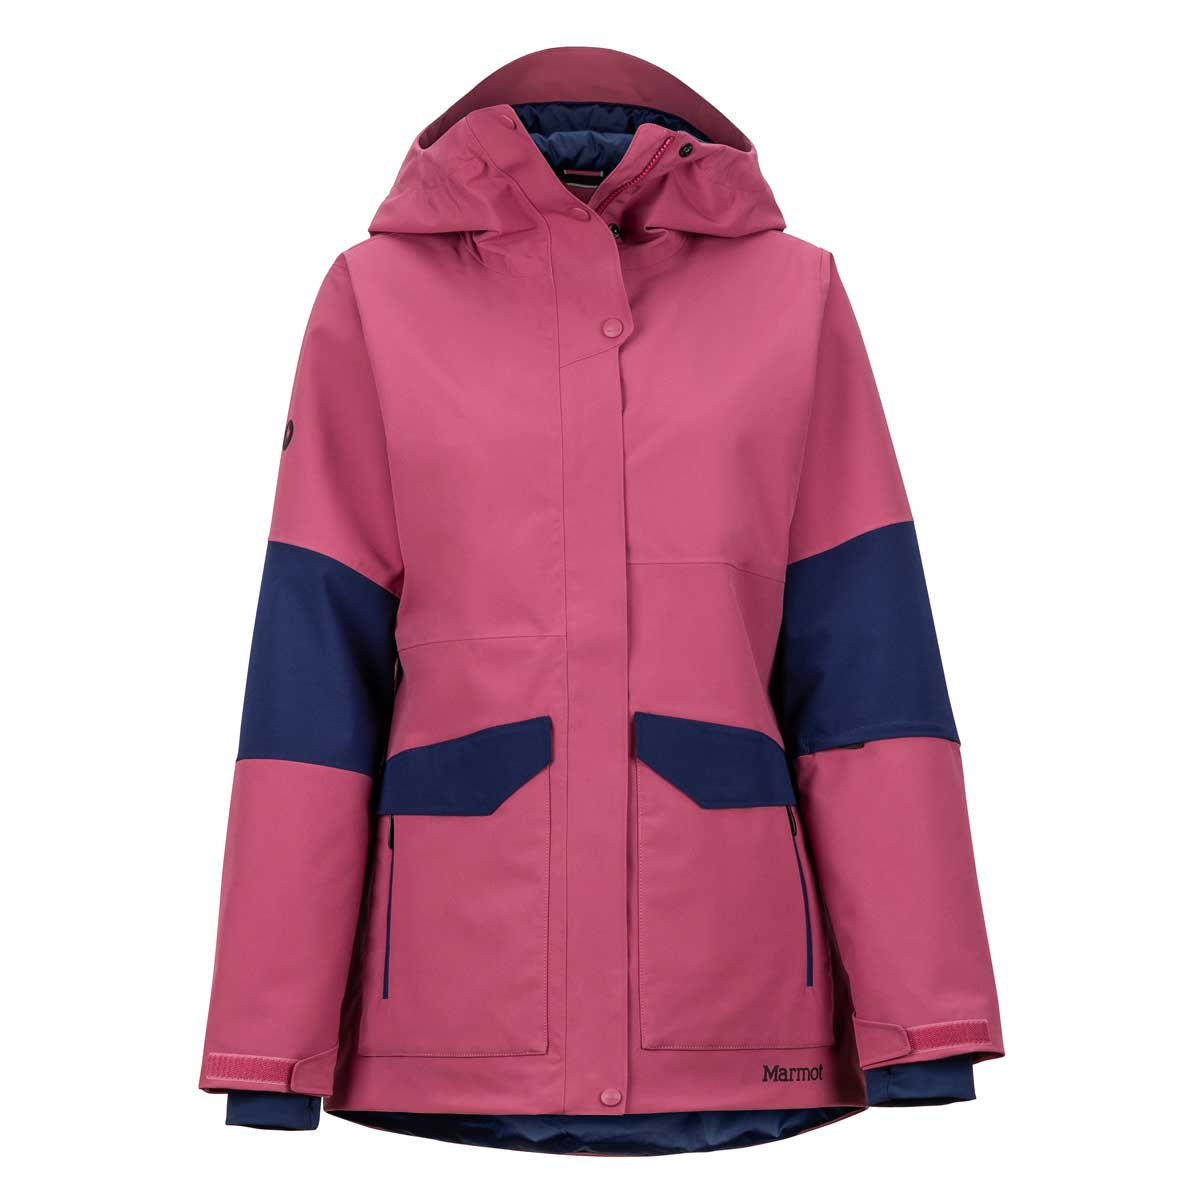 Marmot Women's Wilder Jacket in Dry Rose and Arctic Navy